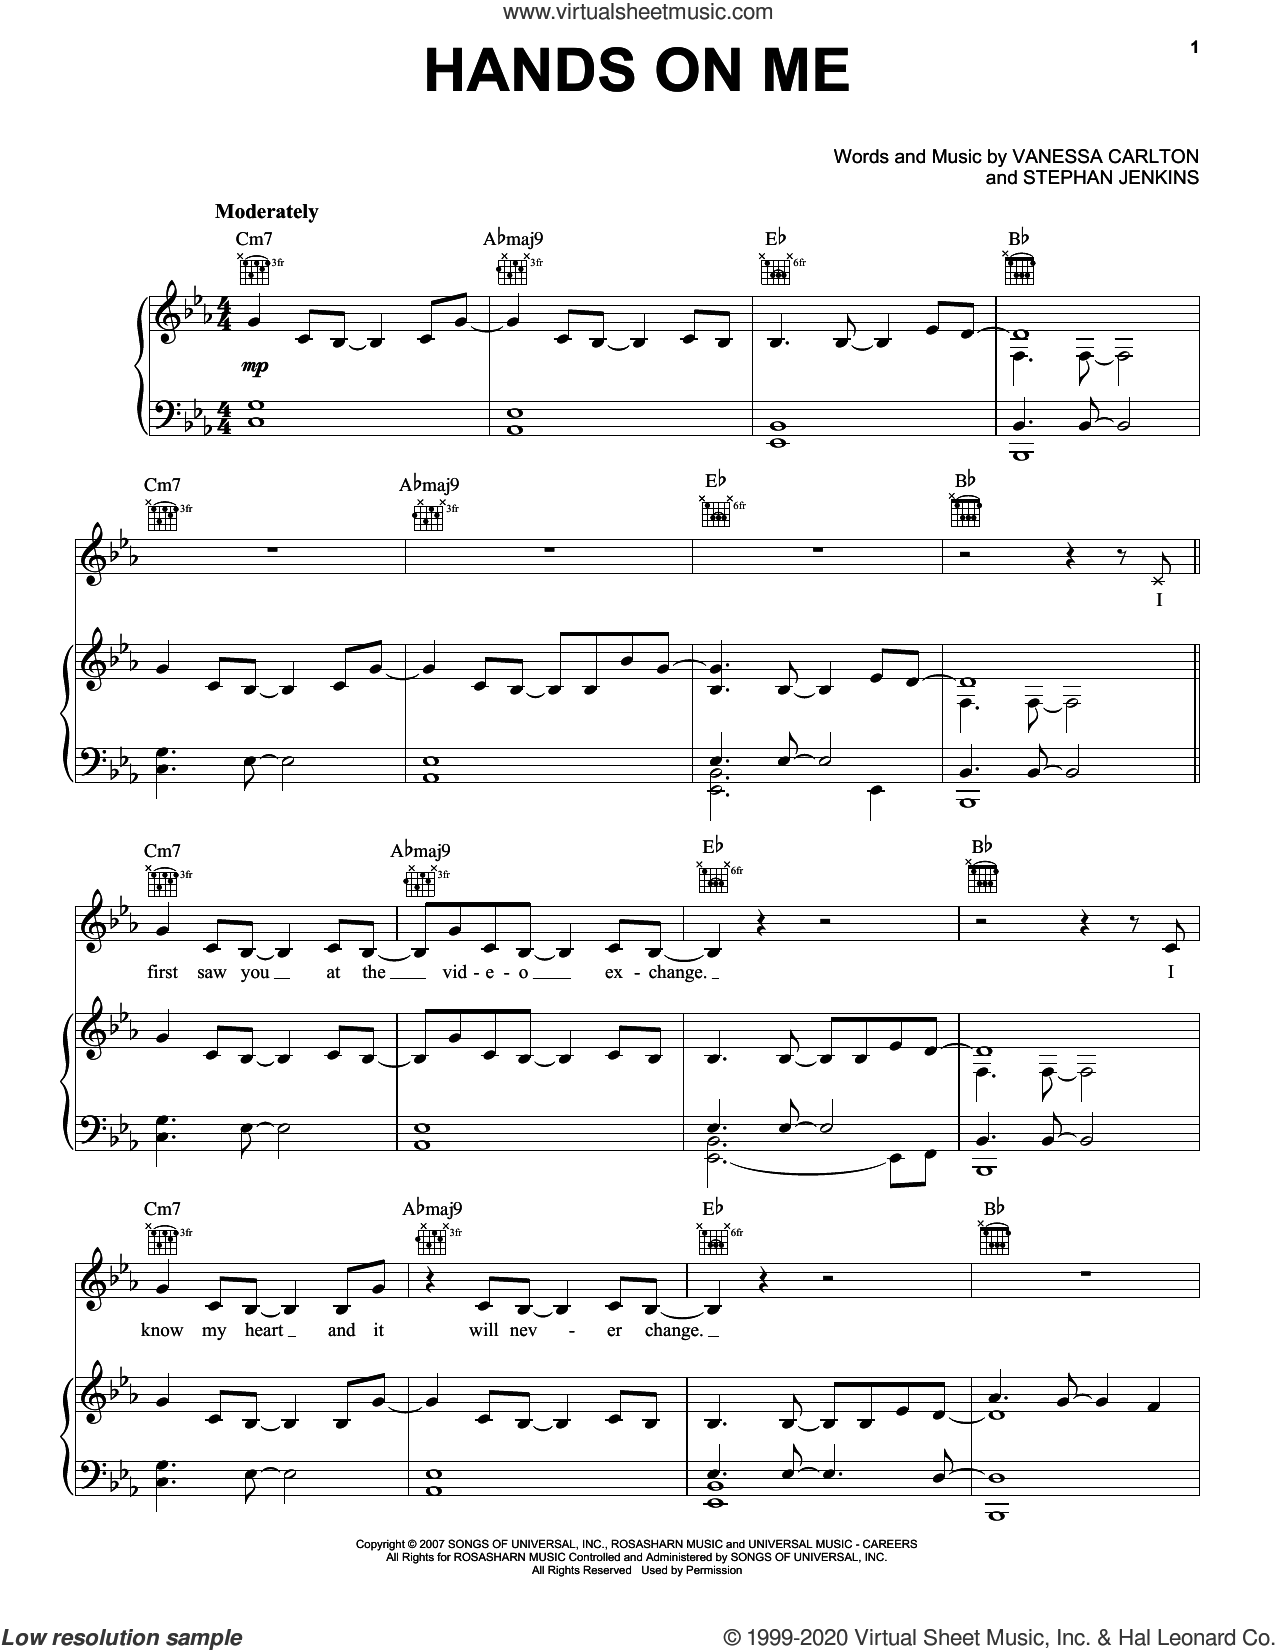 Hands On Me sheet music for voice, piano or guitar by Vanessa Carlton and Stephan Jenkins, intermediate skill level